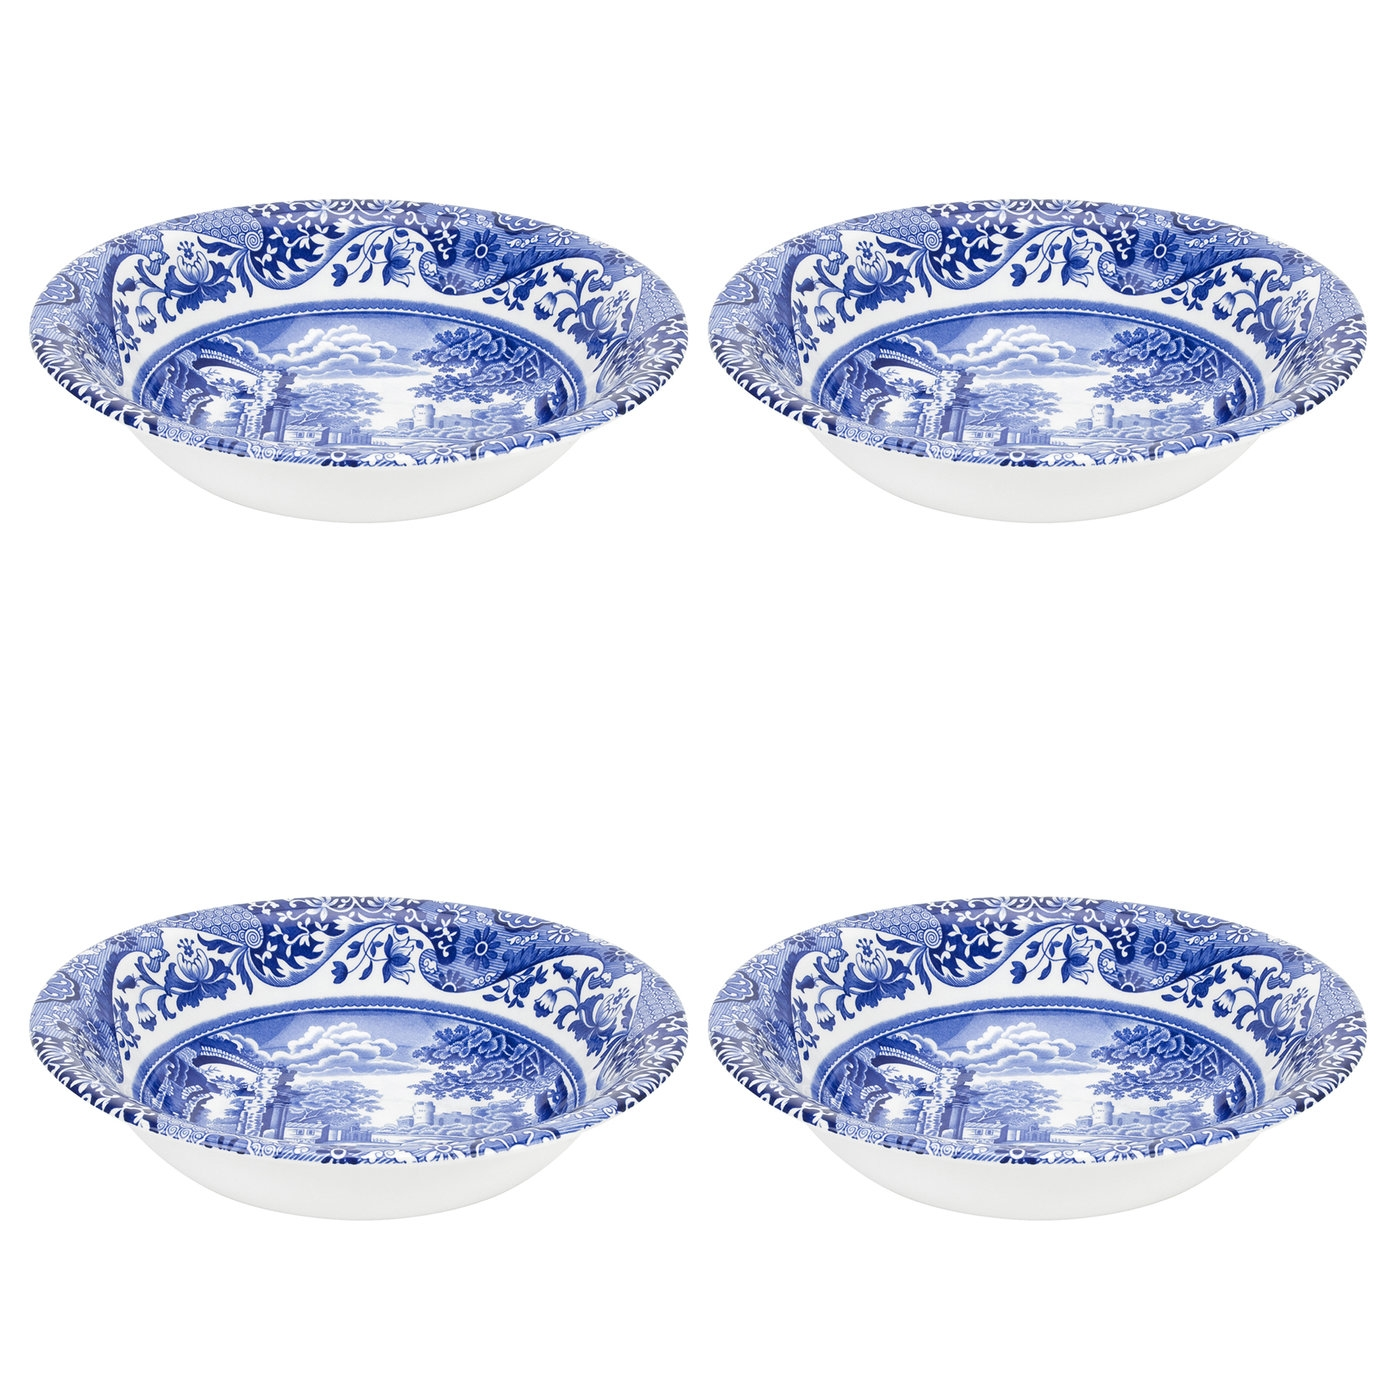 Spode Blue Italian Set of 4 Ascot Cereal Bowls image number 0